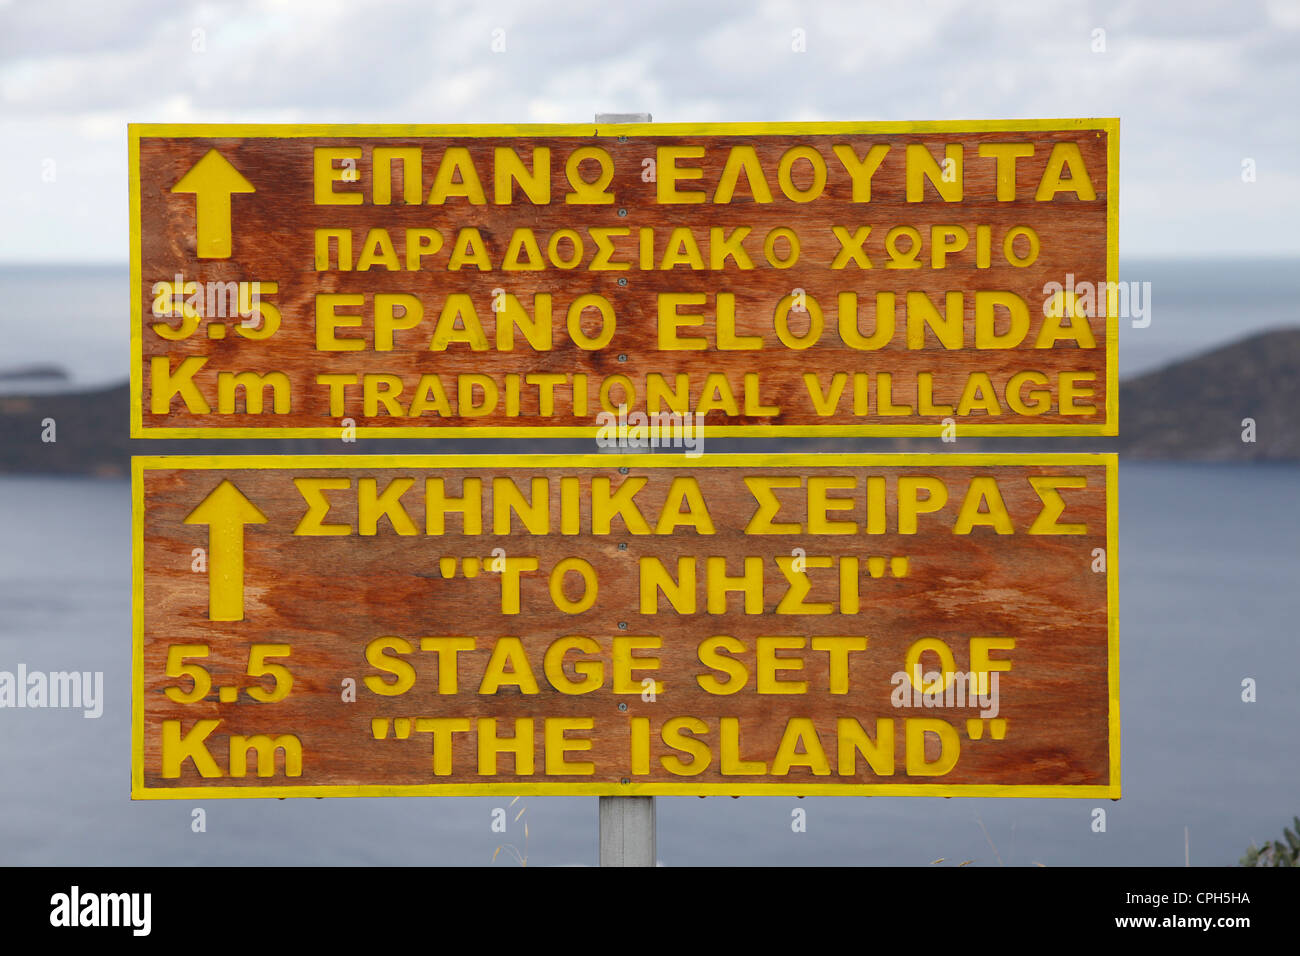 A Road sign in English and Greek language in the bay of Elounda at the north eastern Crete Island Greece - Stock Image